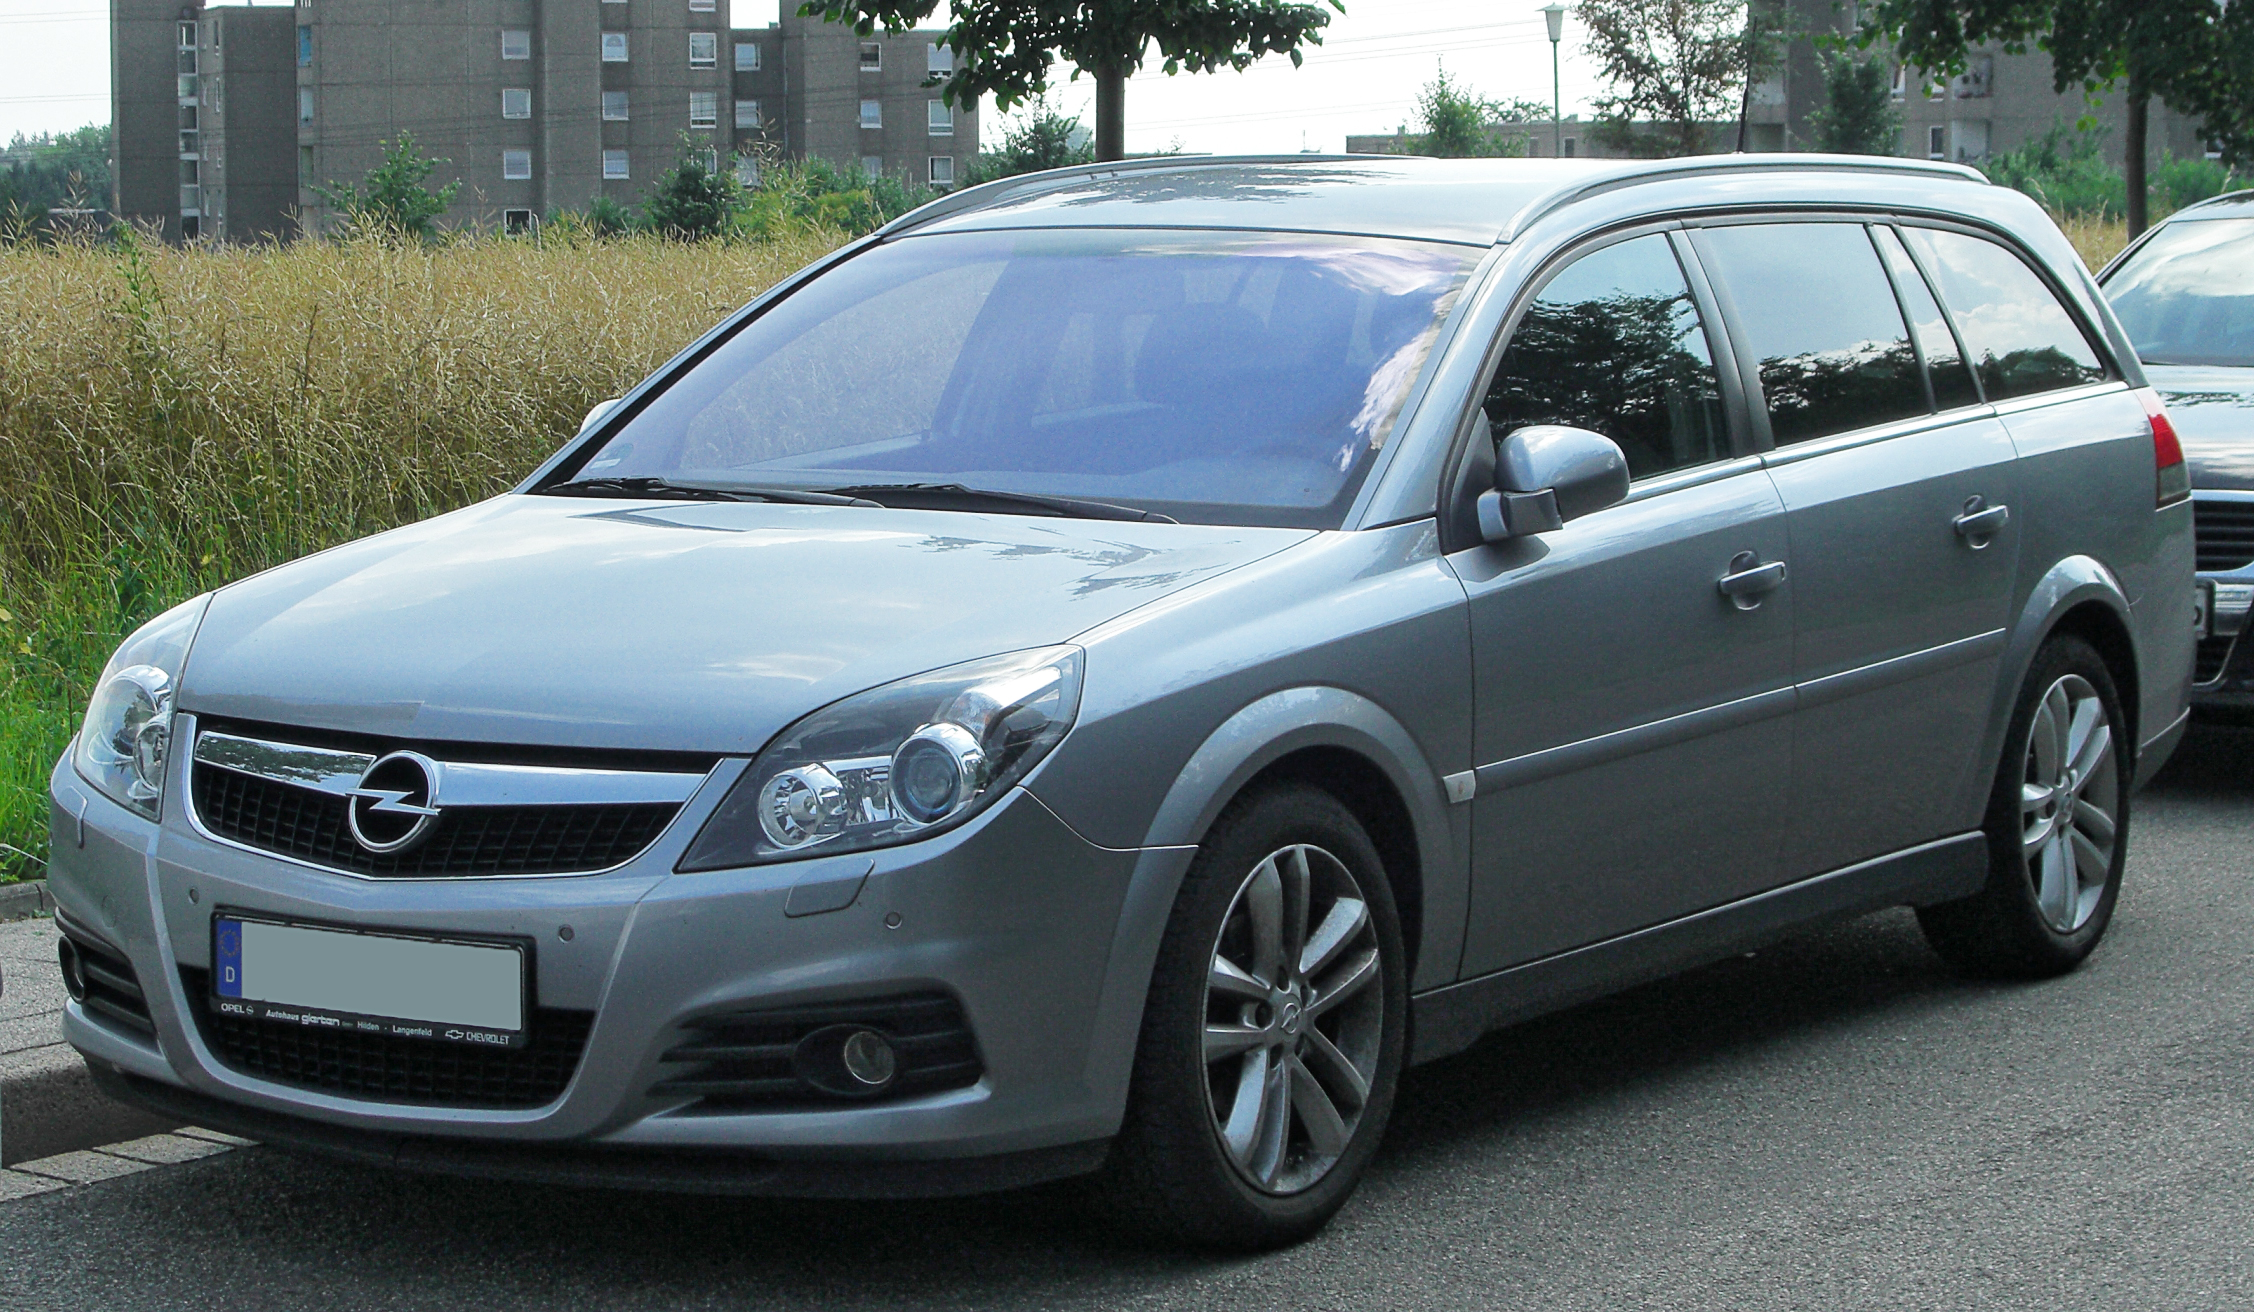 Pictures of holden vectra hatcback (b) 2009